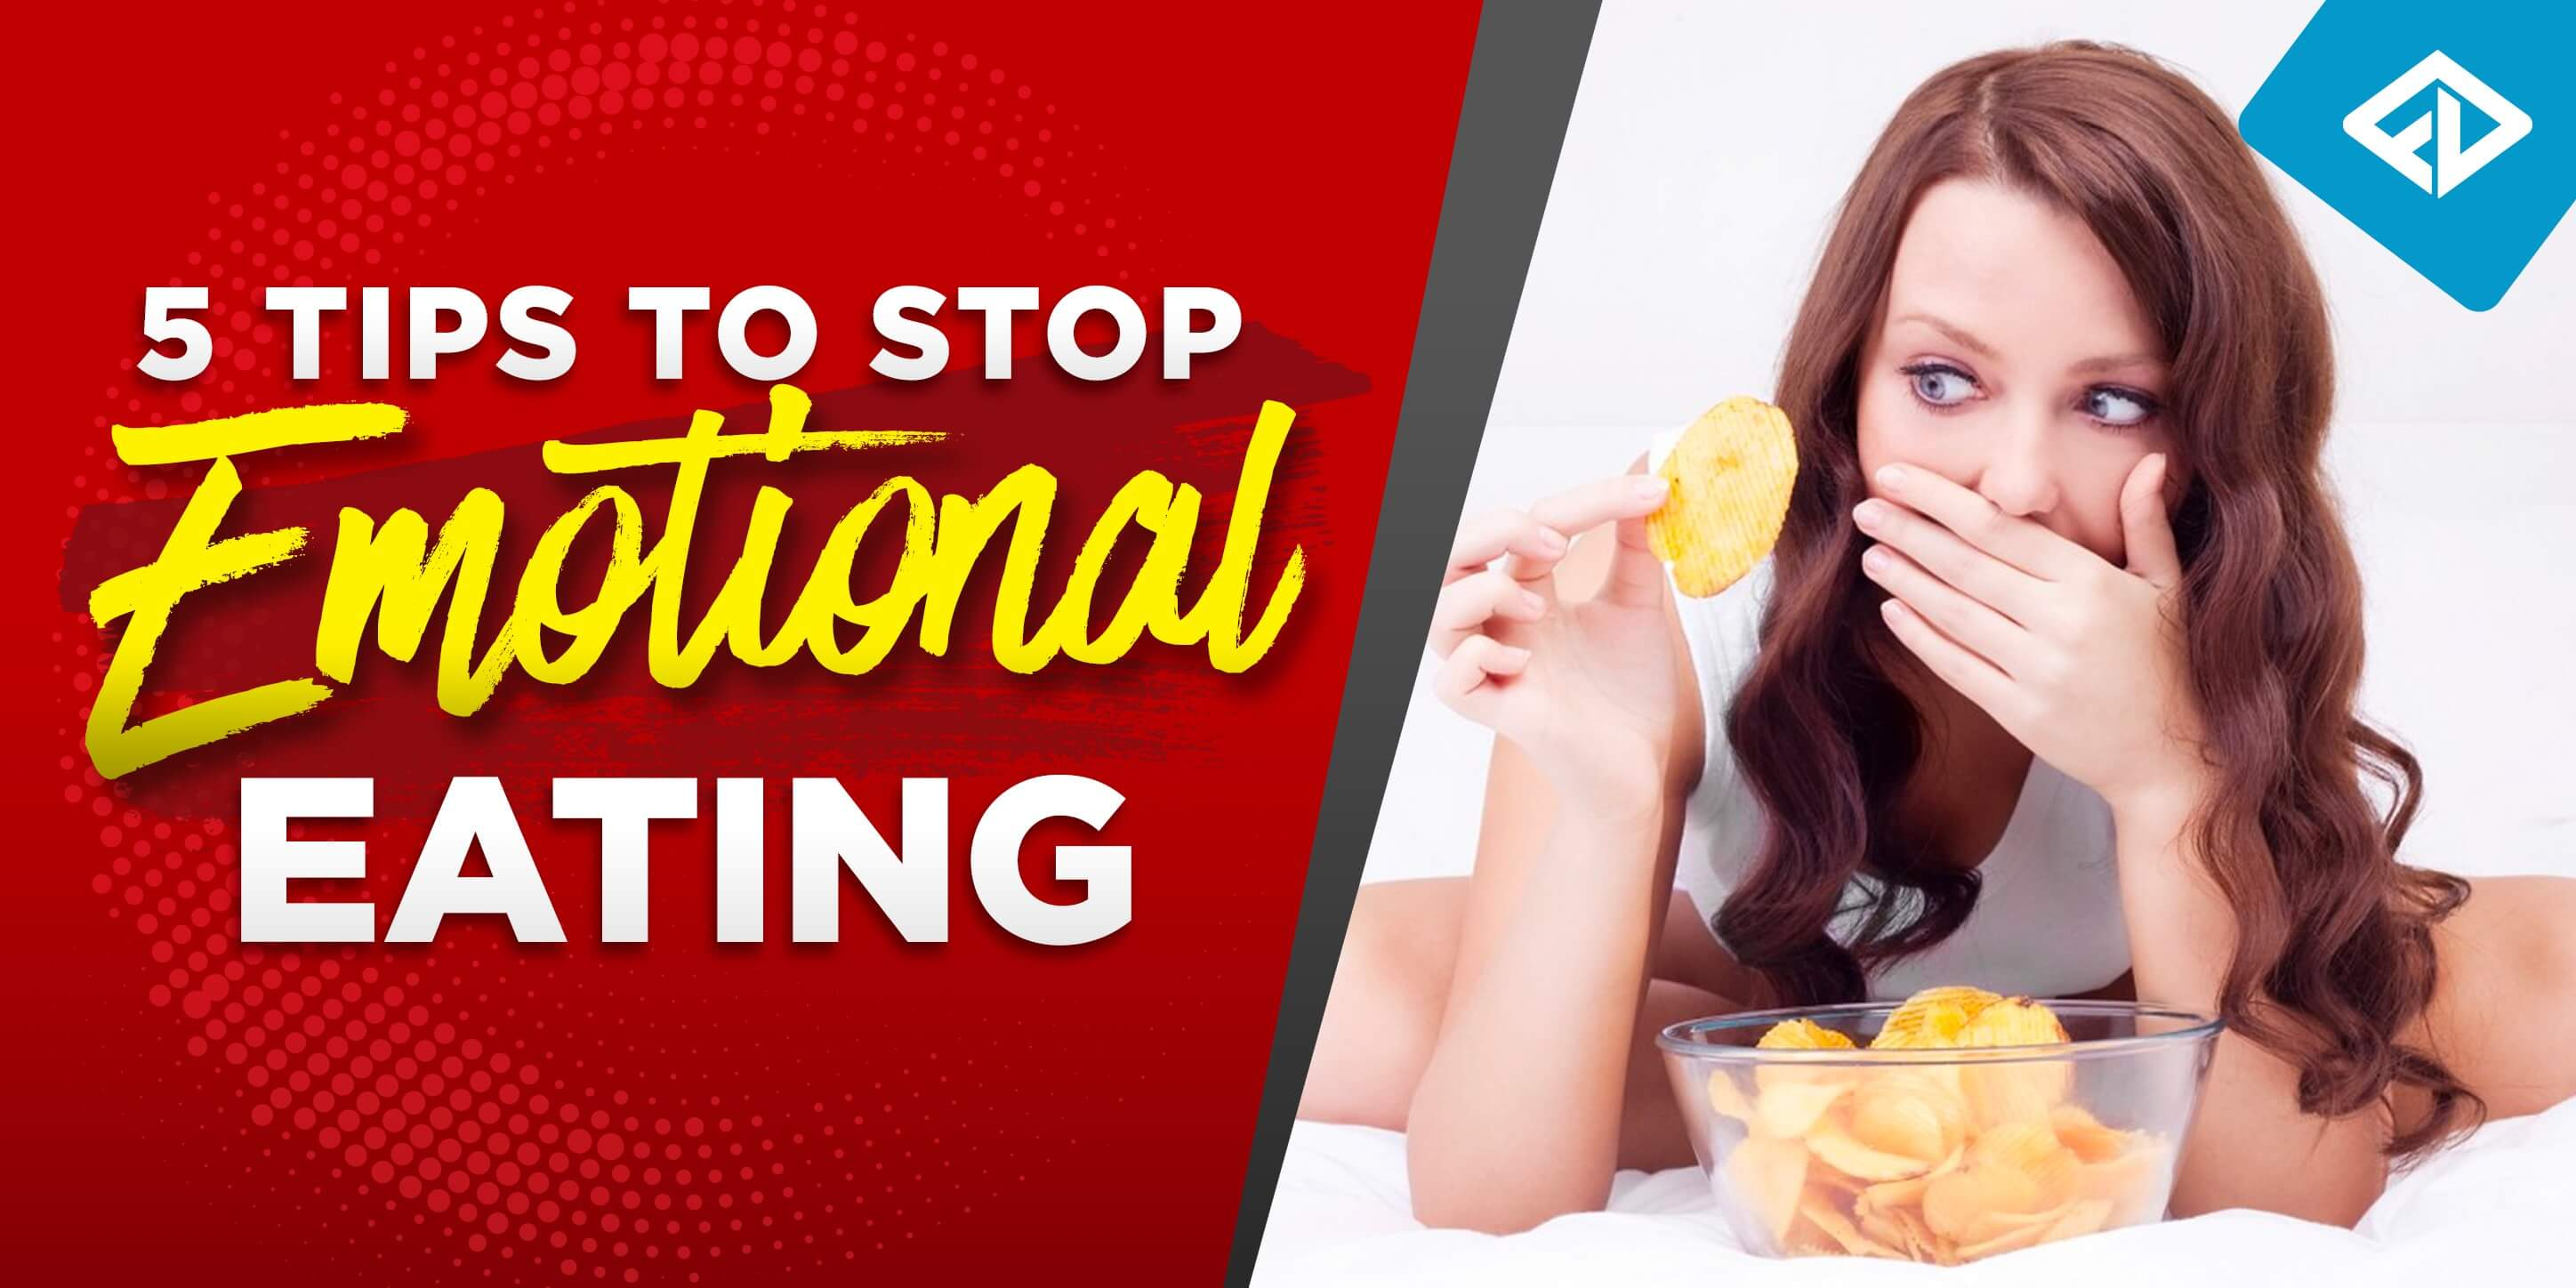 5 Ways To Stop Emotional Eating